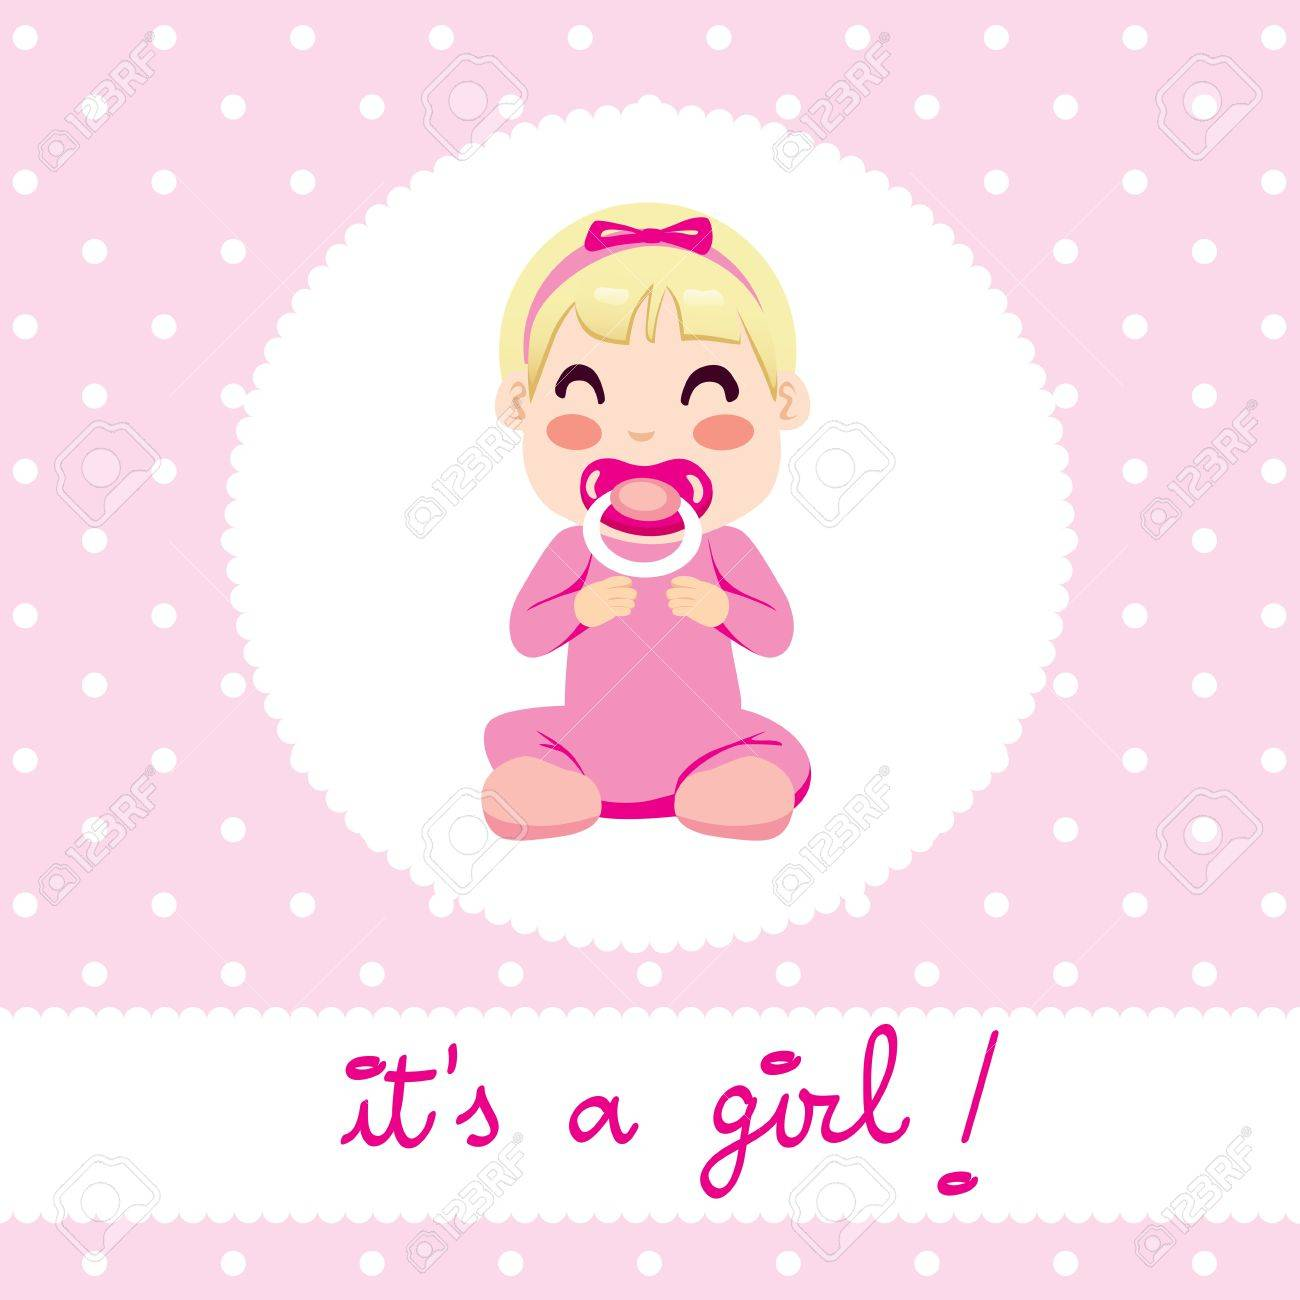 Cute illustration design of newborn baby girl in pink onesie...